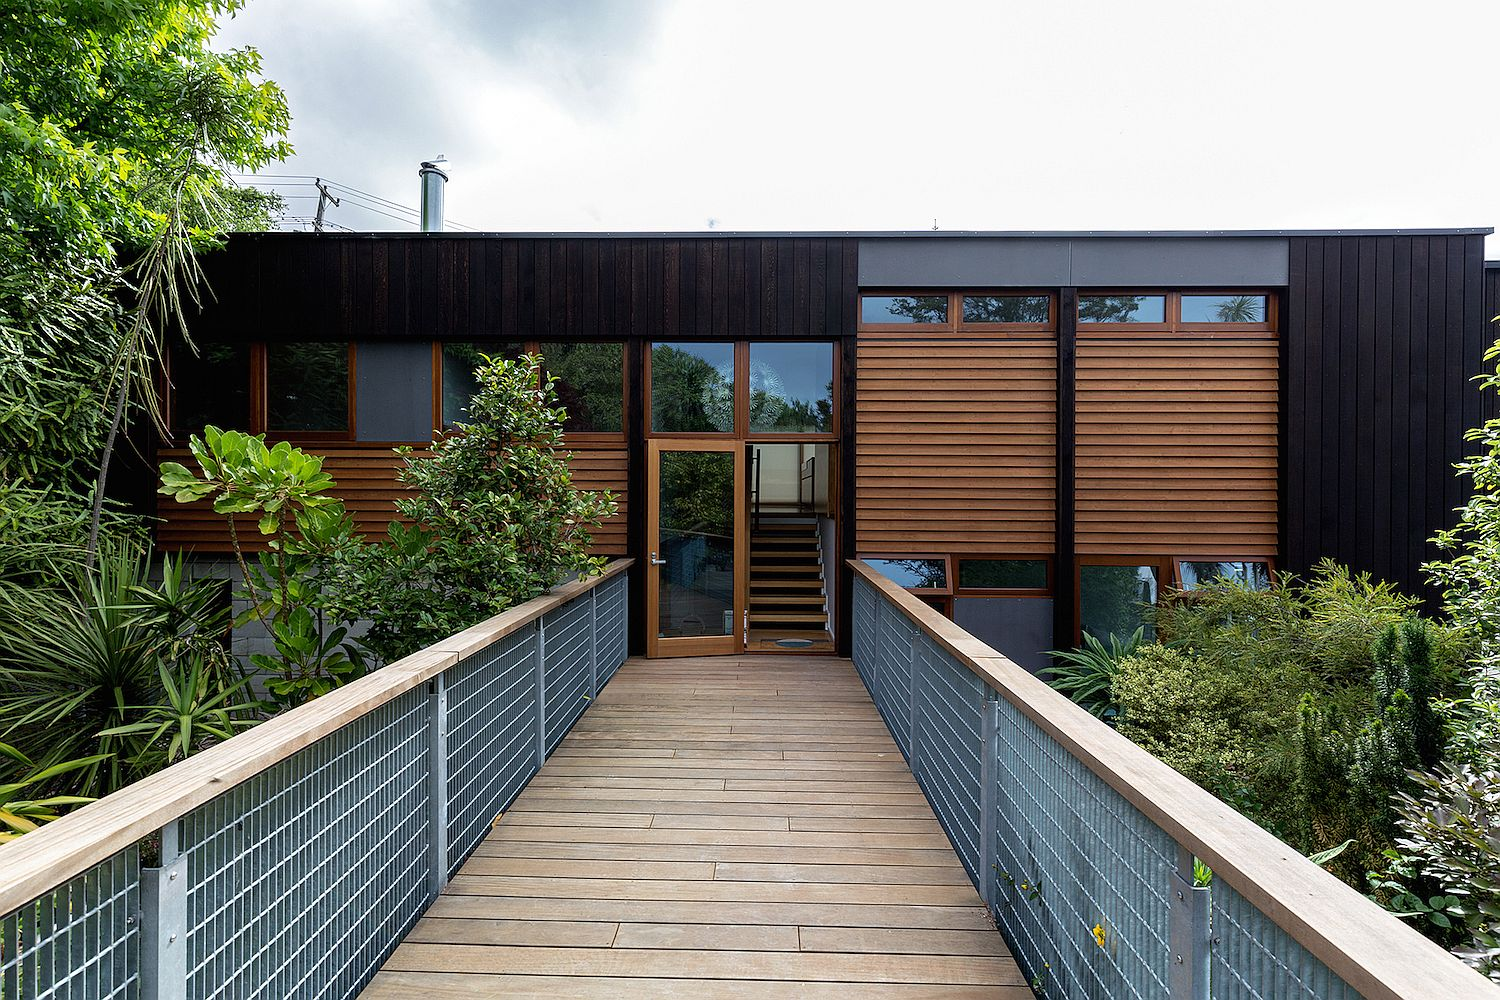 Entrance to the revamped 1950s Cowey House with a wooden bridge and smart insulation